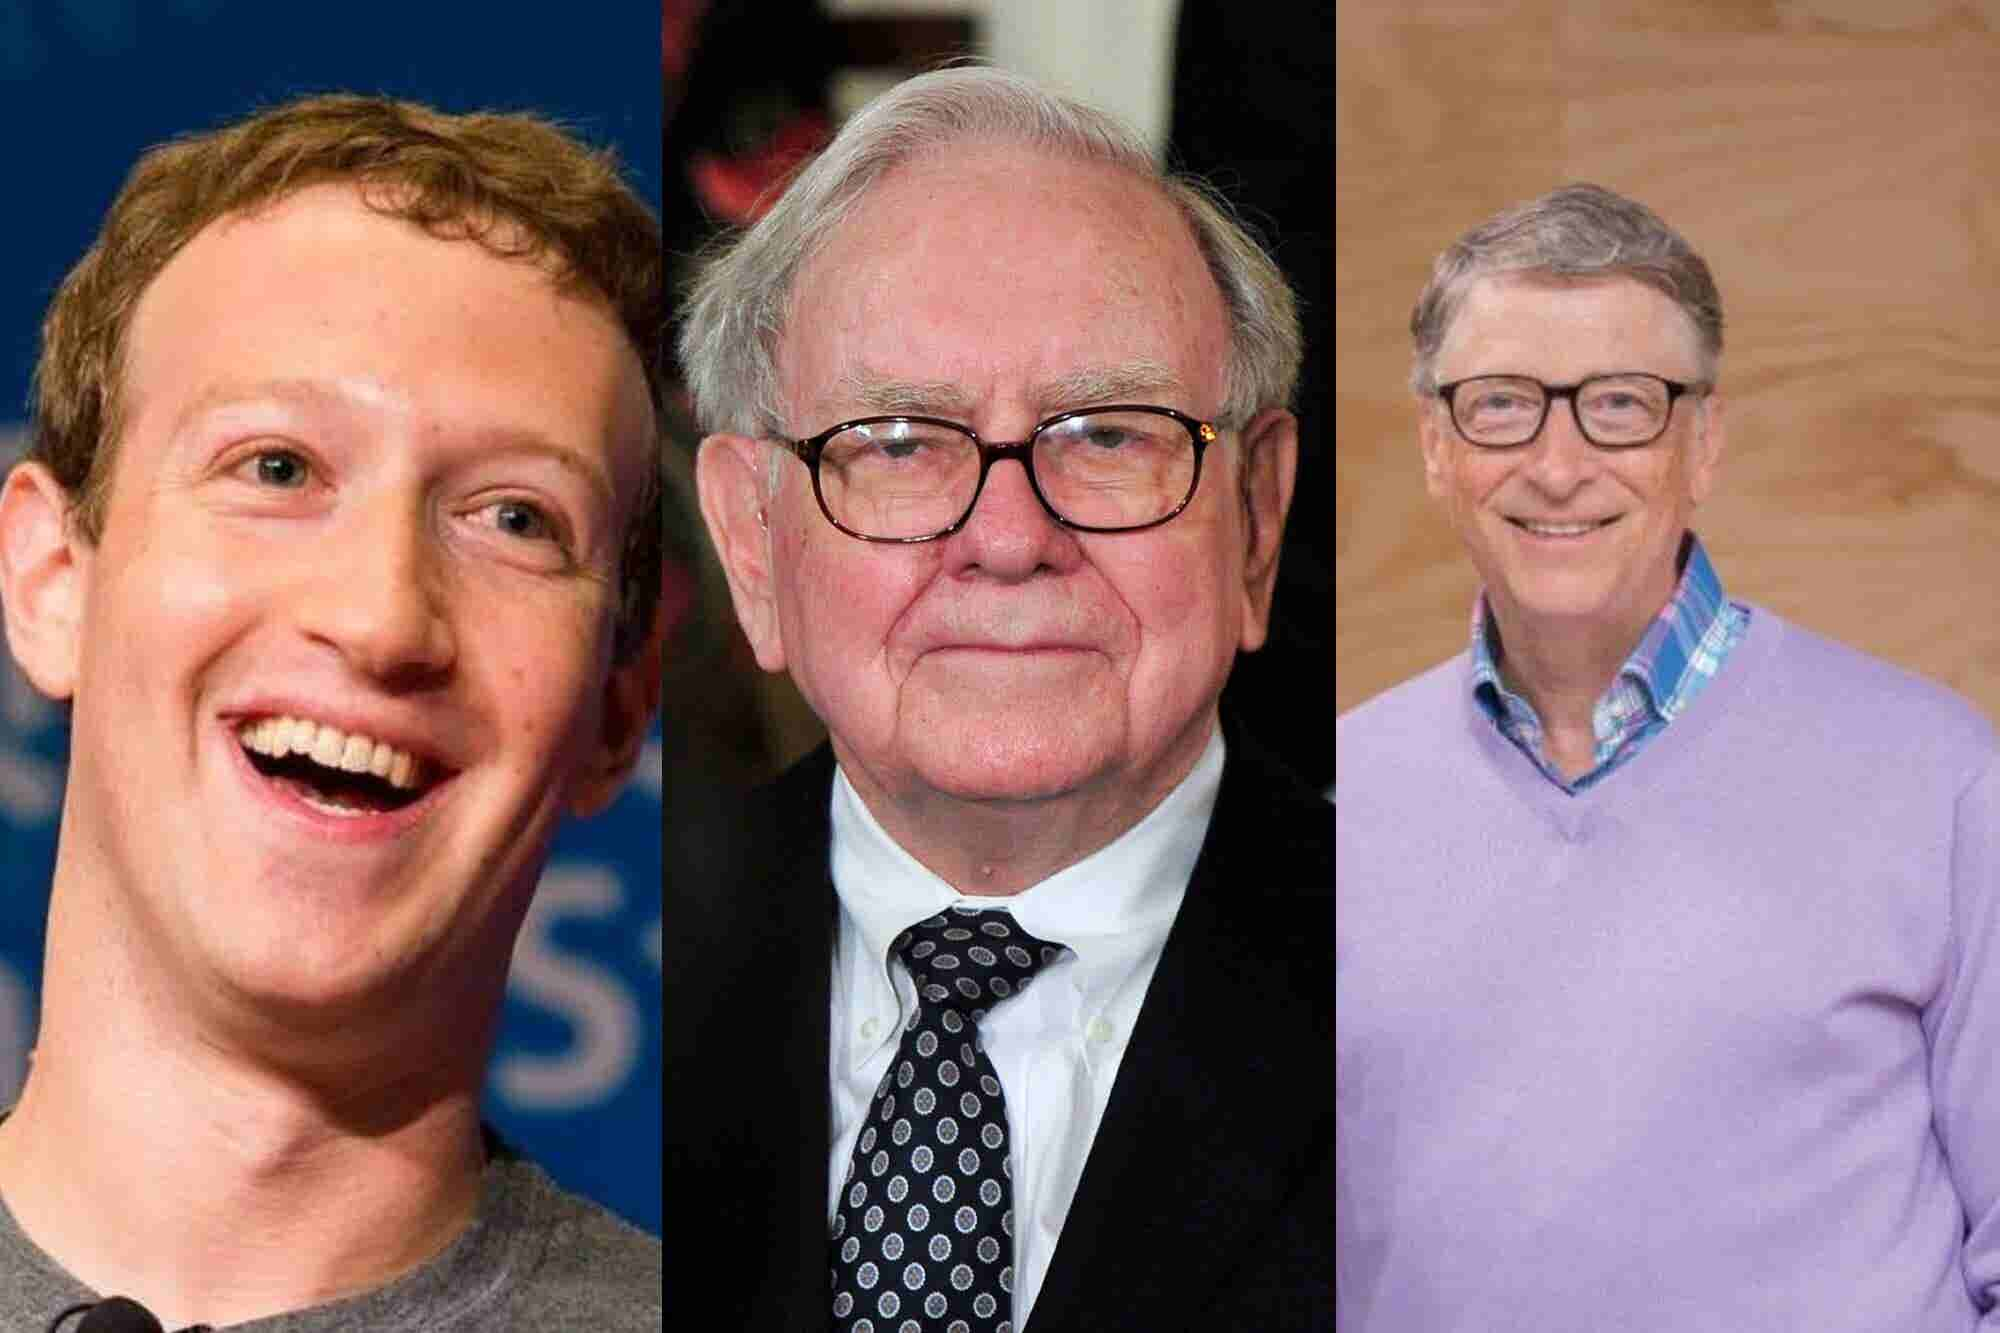 Tech Entrepreneurs Move Towards Philanthropy: 5 Most Charitable Business Leaders